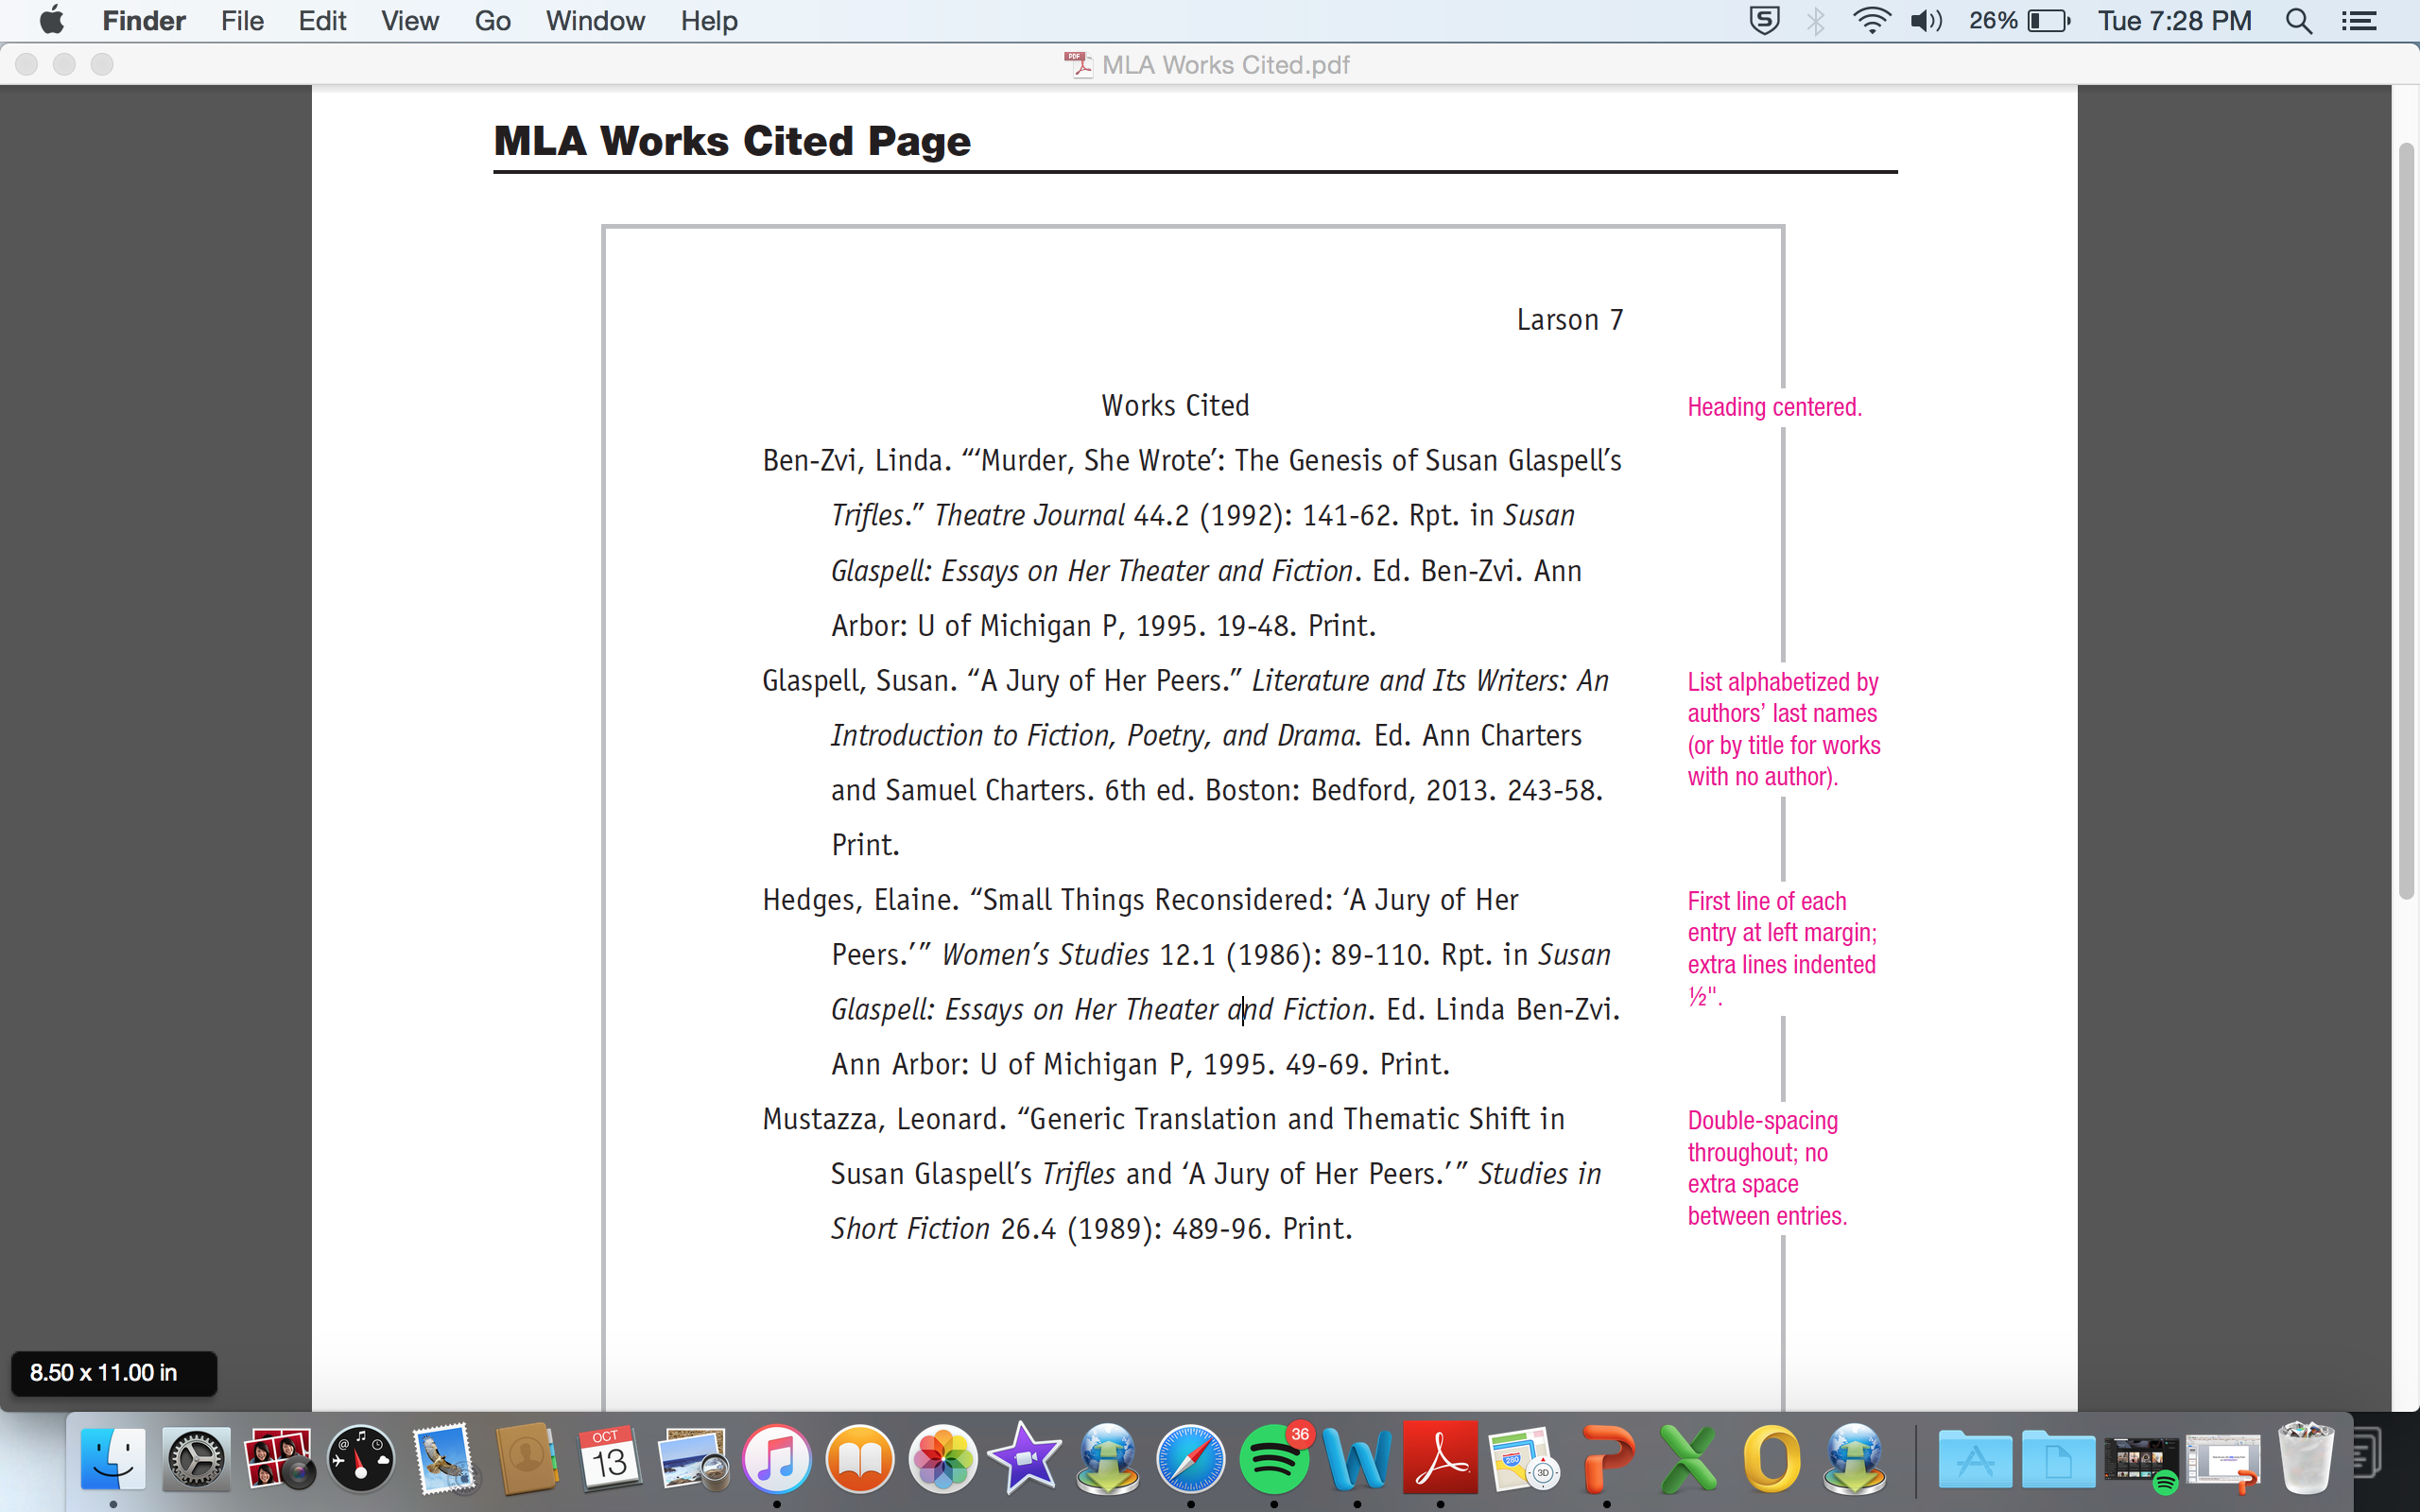 mla citation essay within anthology Mla 8 updates play in a collection or anthology (p 27) cite the playwright first, then the play title in quotes if you cite more than one play from the same collection, create a citation for each play no editor use the anthology format, but omit the editor.